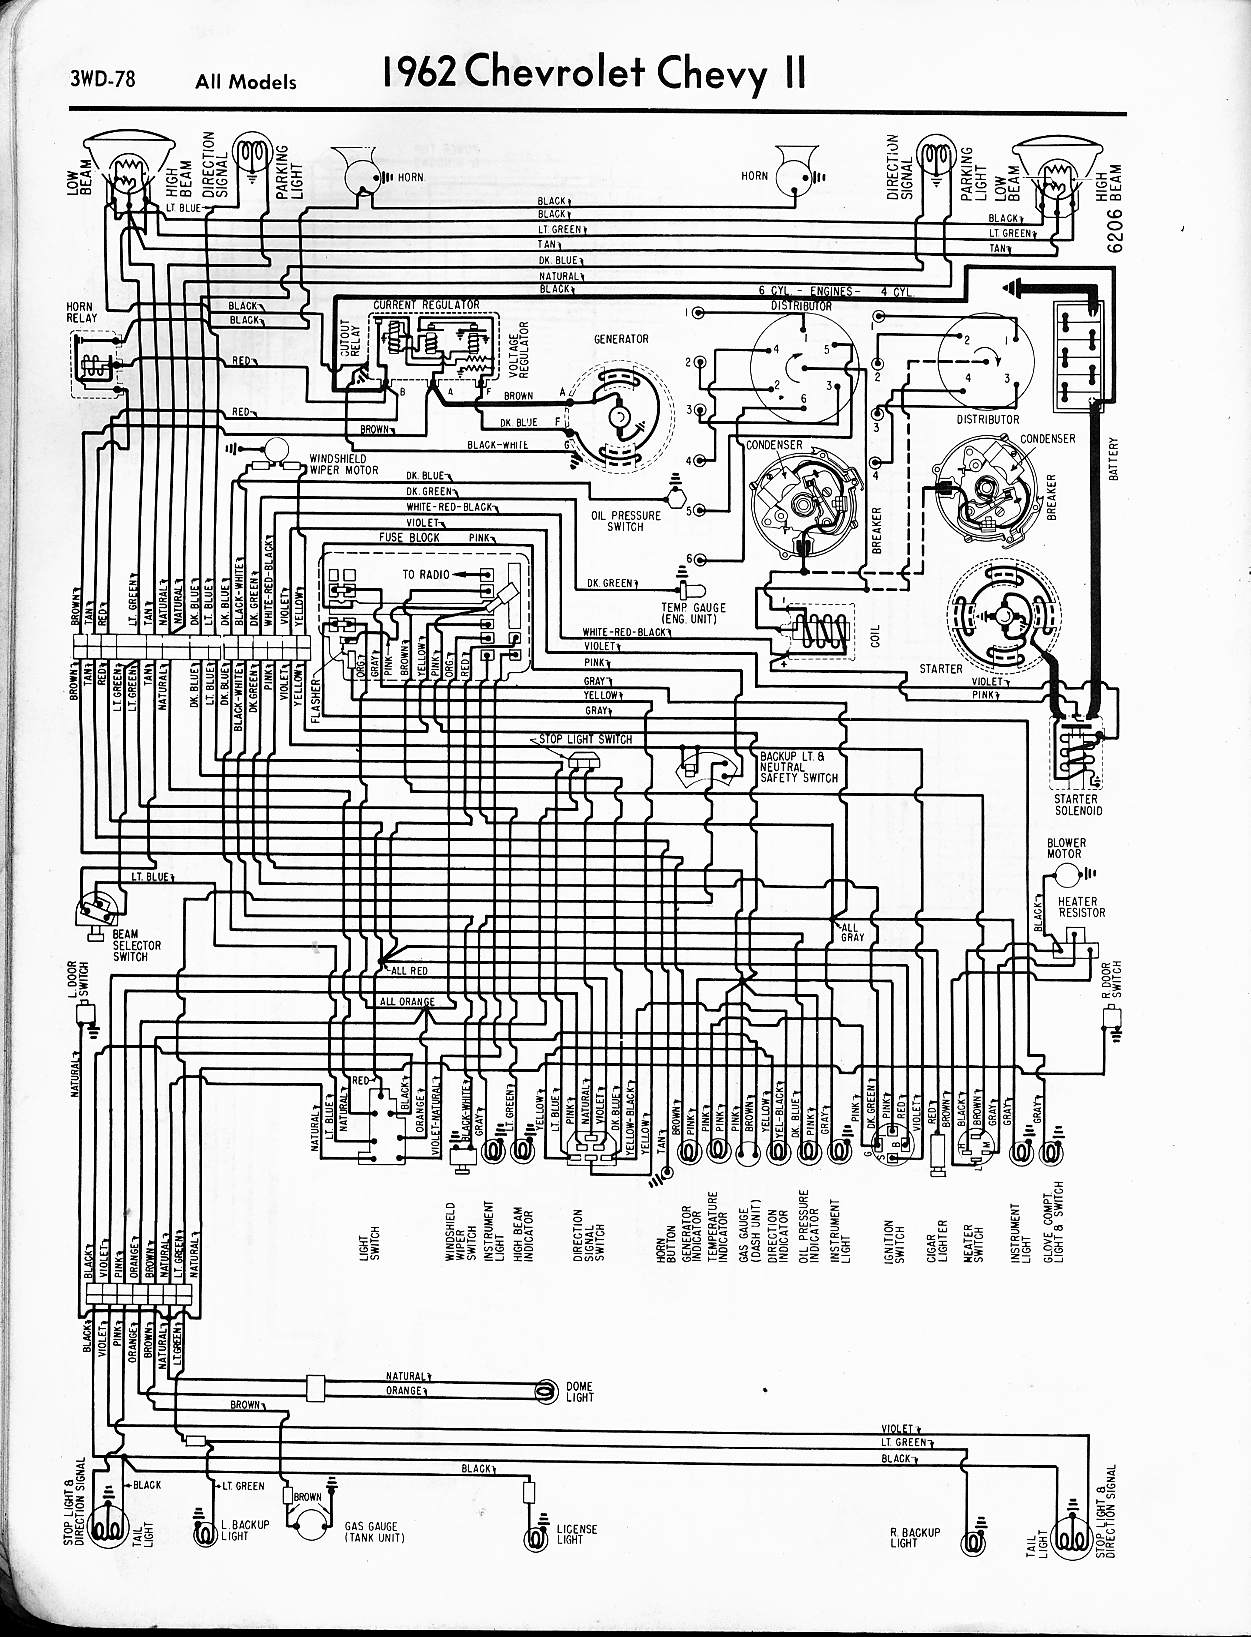 Auto Turn Signal Wiring Diagram Library 63 Chevy Impala Books Of U2022 1968 Drag Cars